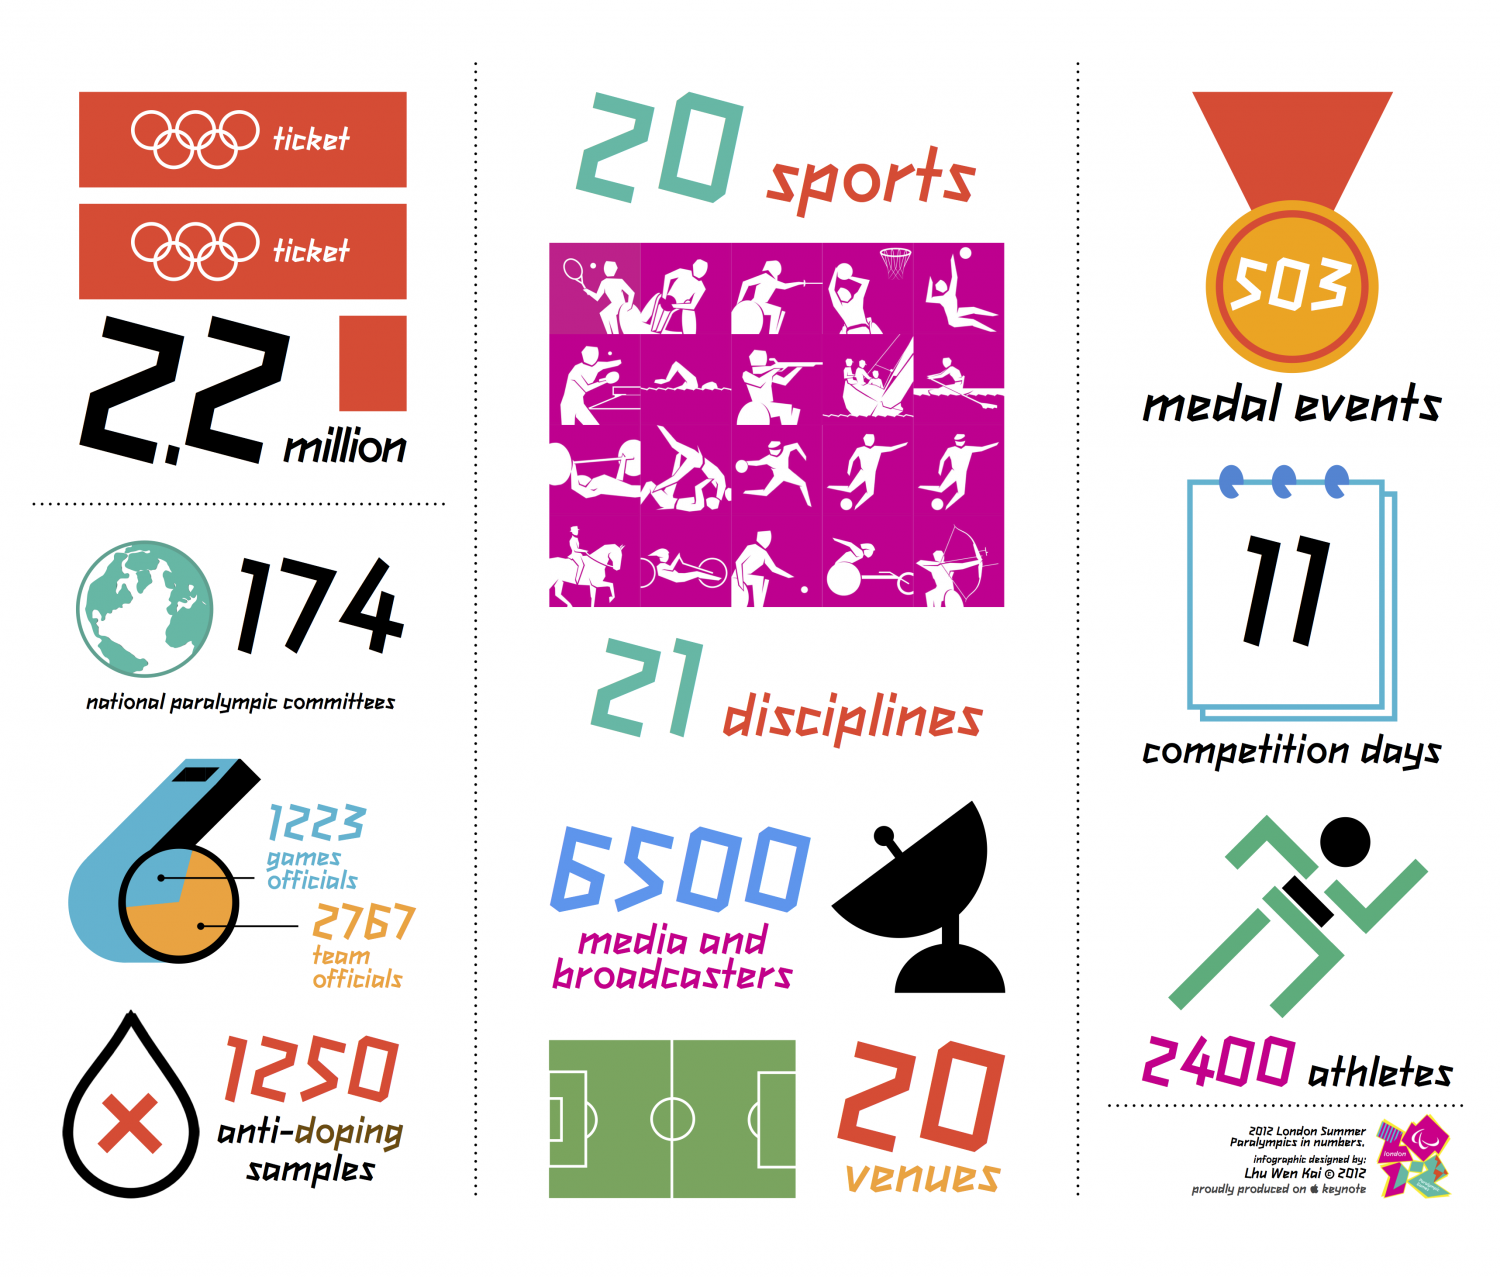 2012 London Summer Paralympics in numbers Infographic